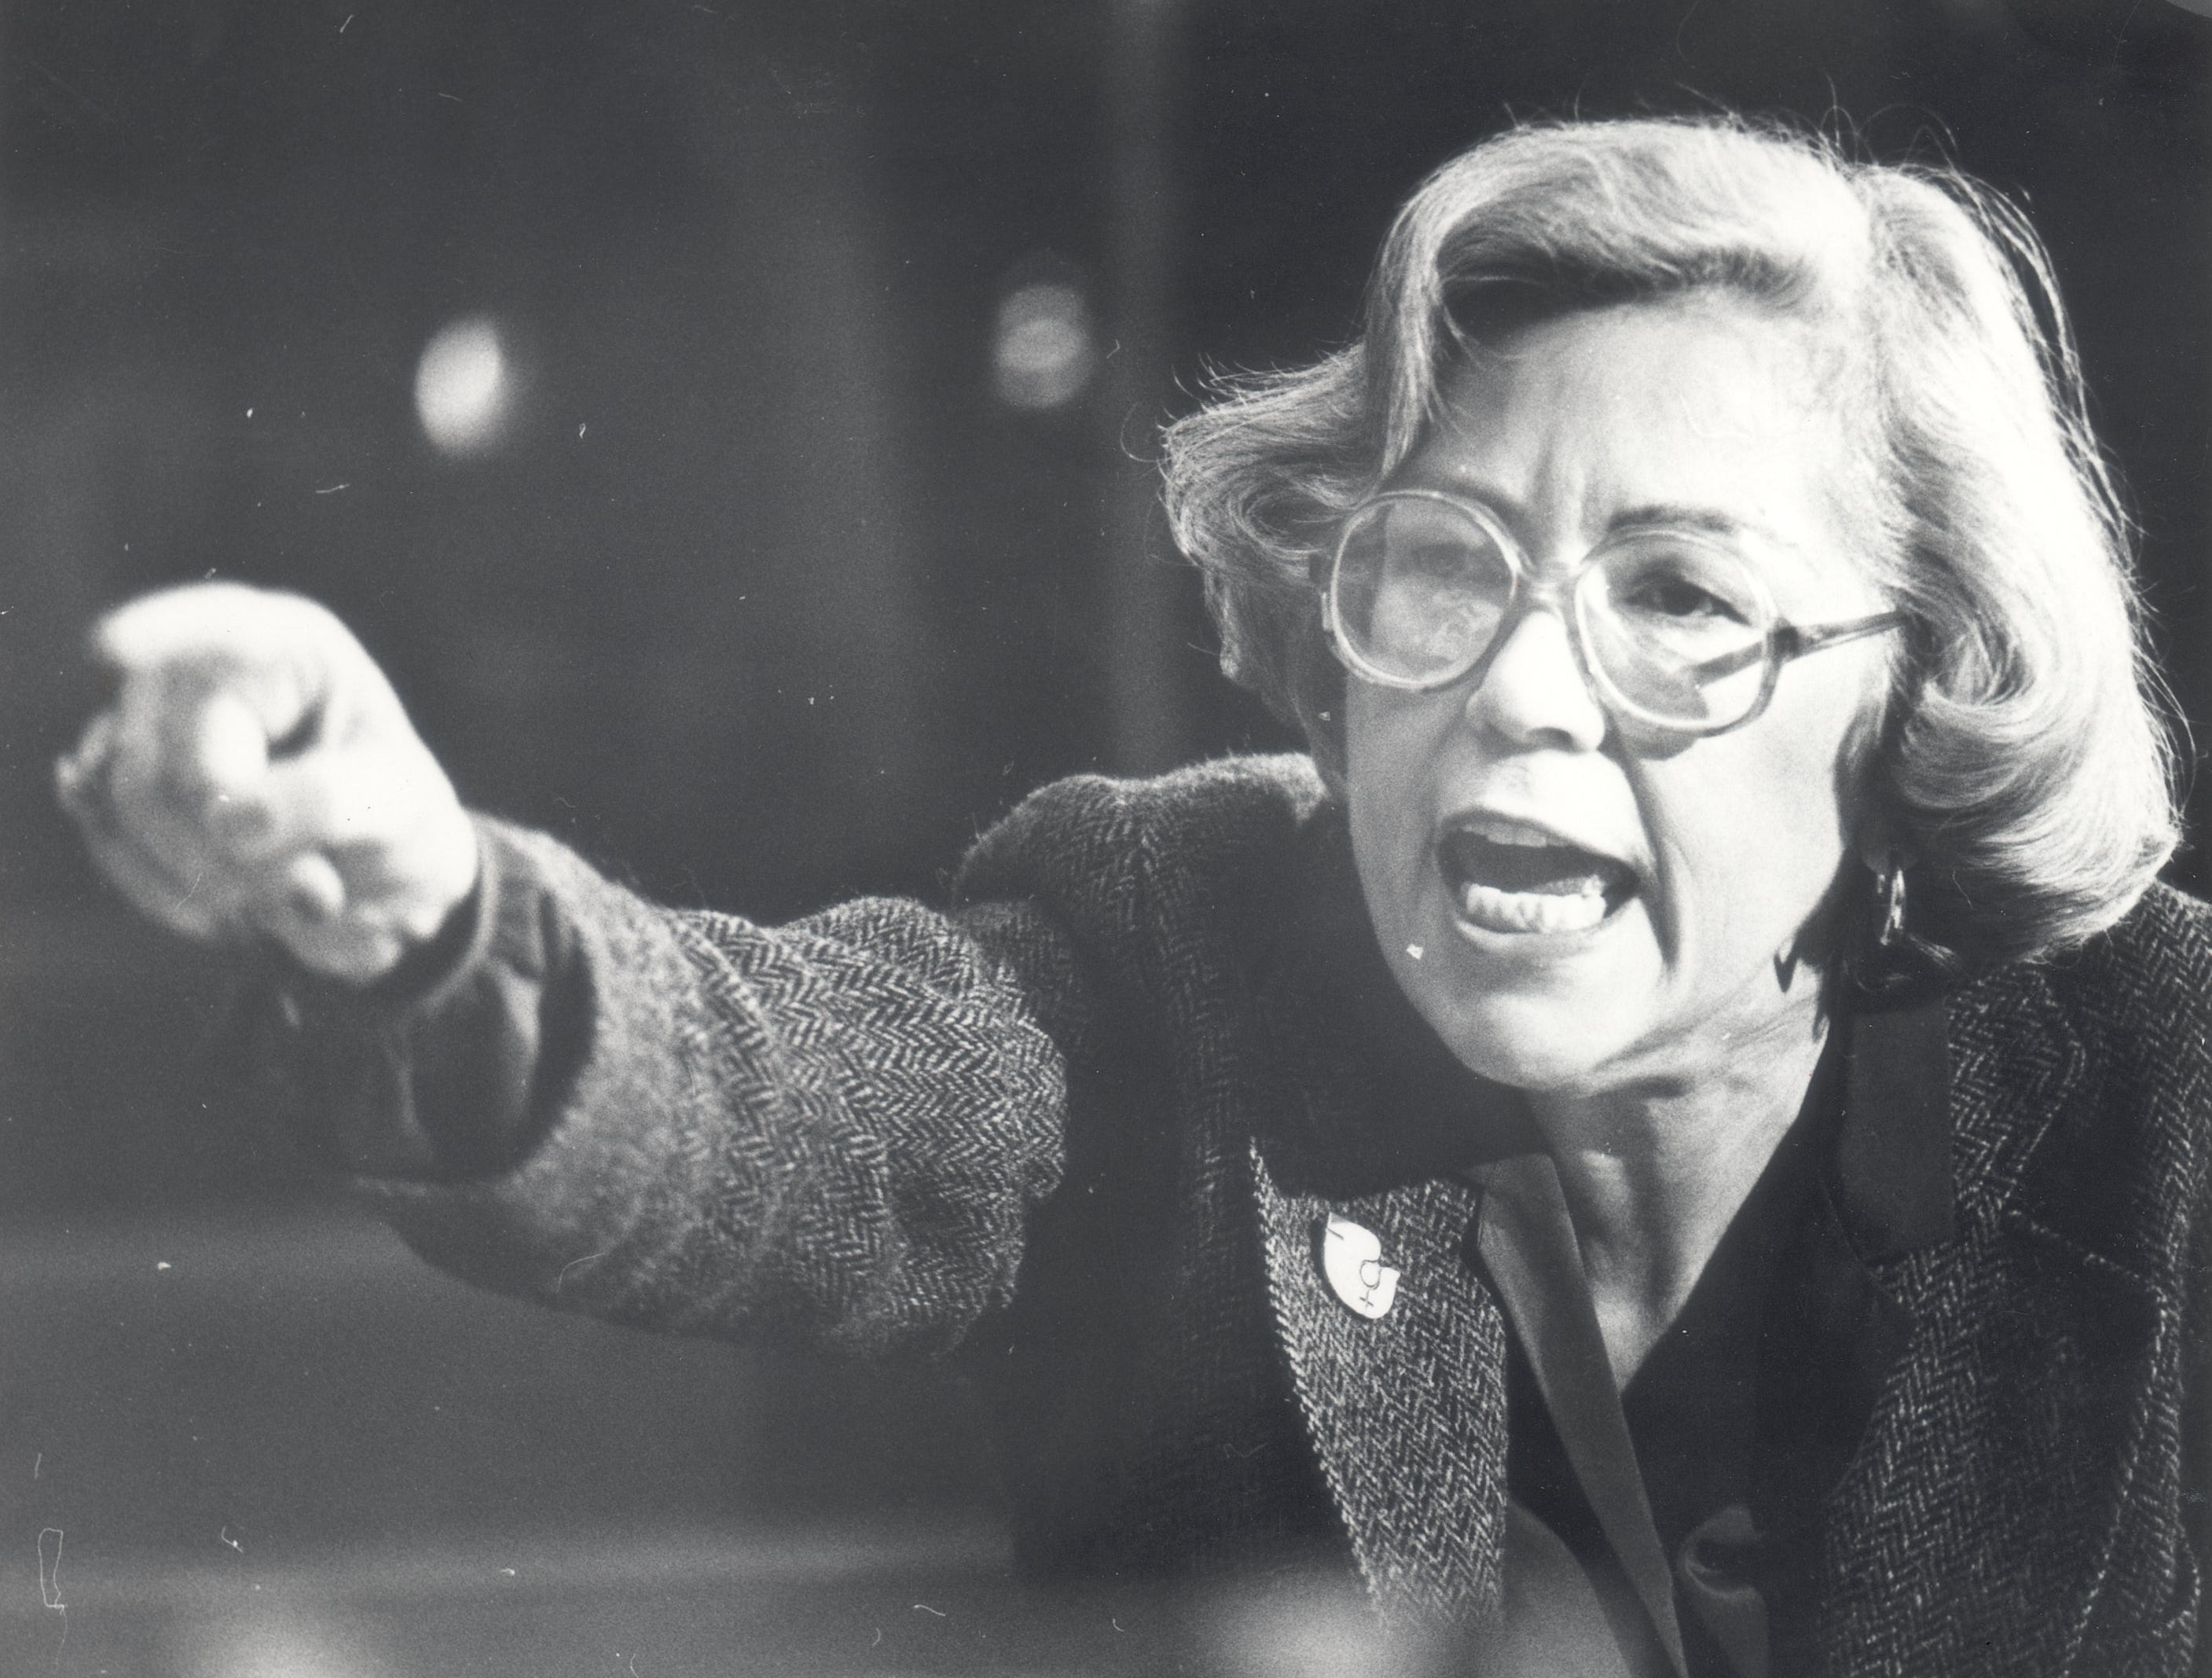 In this 1981 photo from the Detroit Free Press archive, Detroit City Council President Pro-Tem Maryann Mahaffey shows her feelings about Reaganomics as she comments at a hearing.